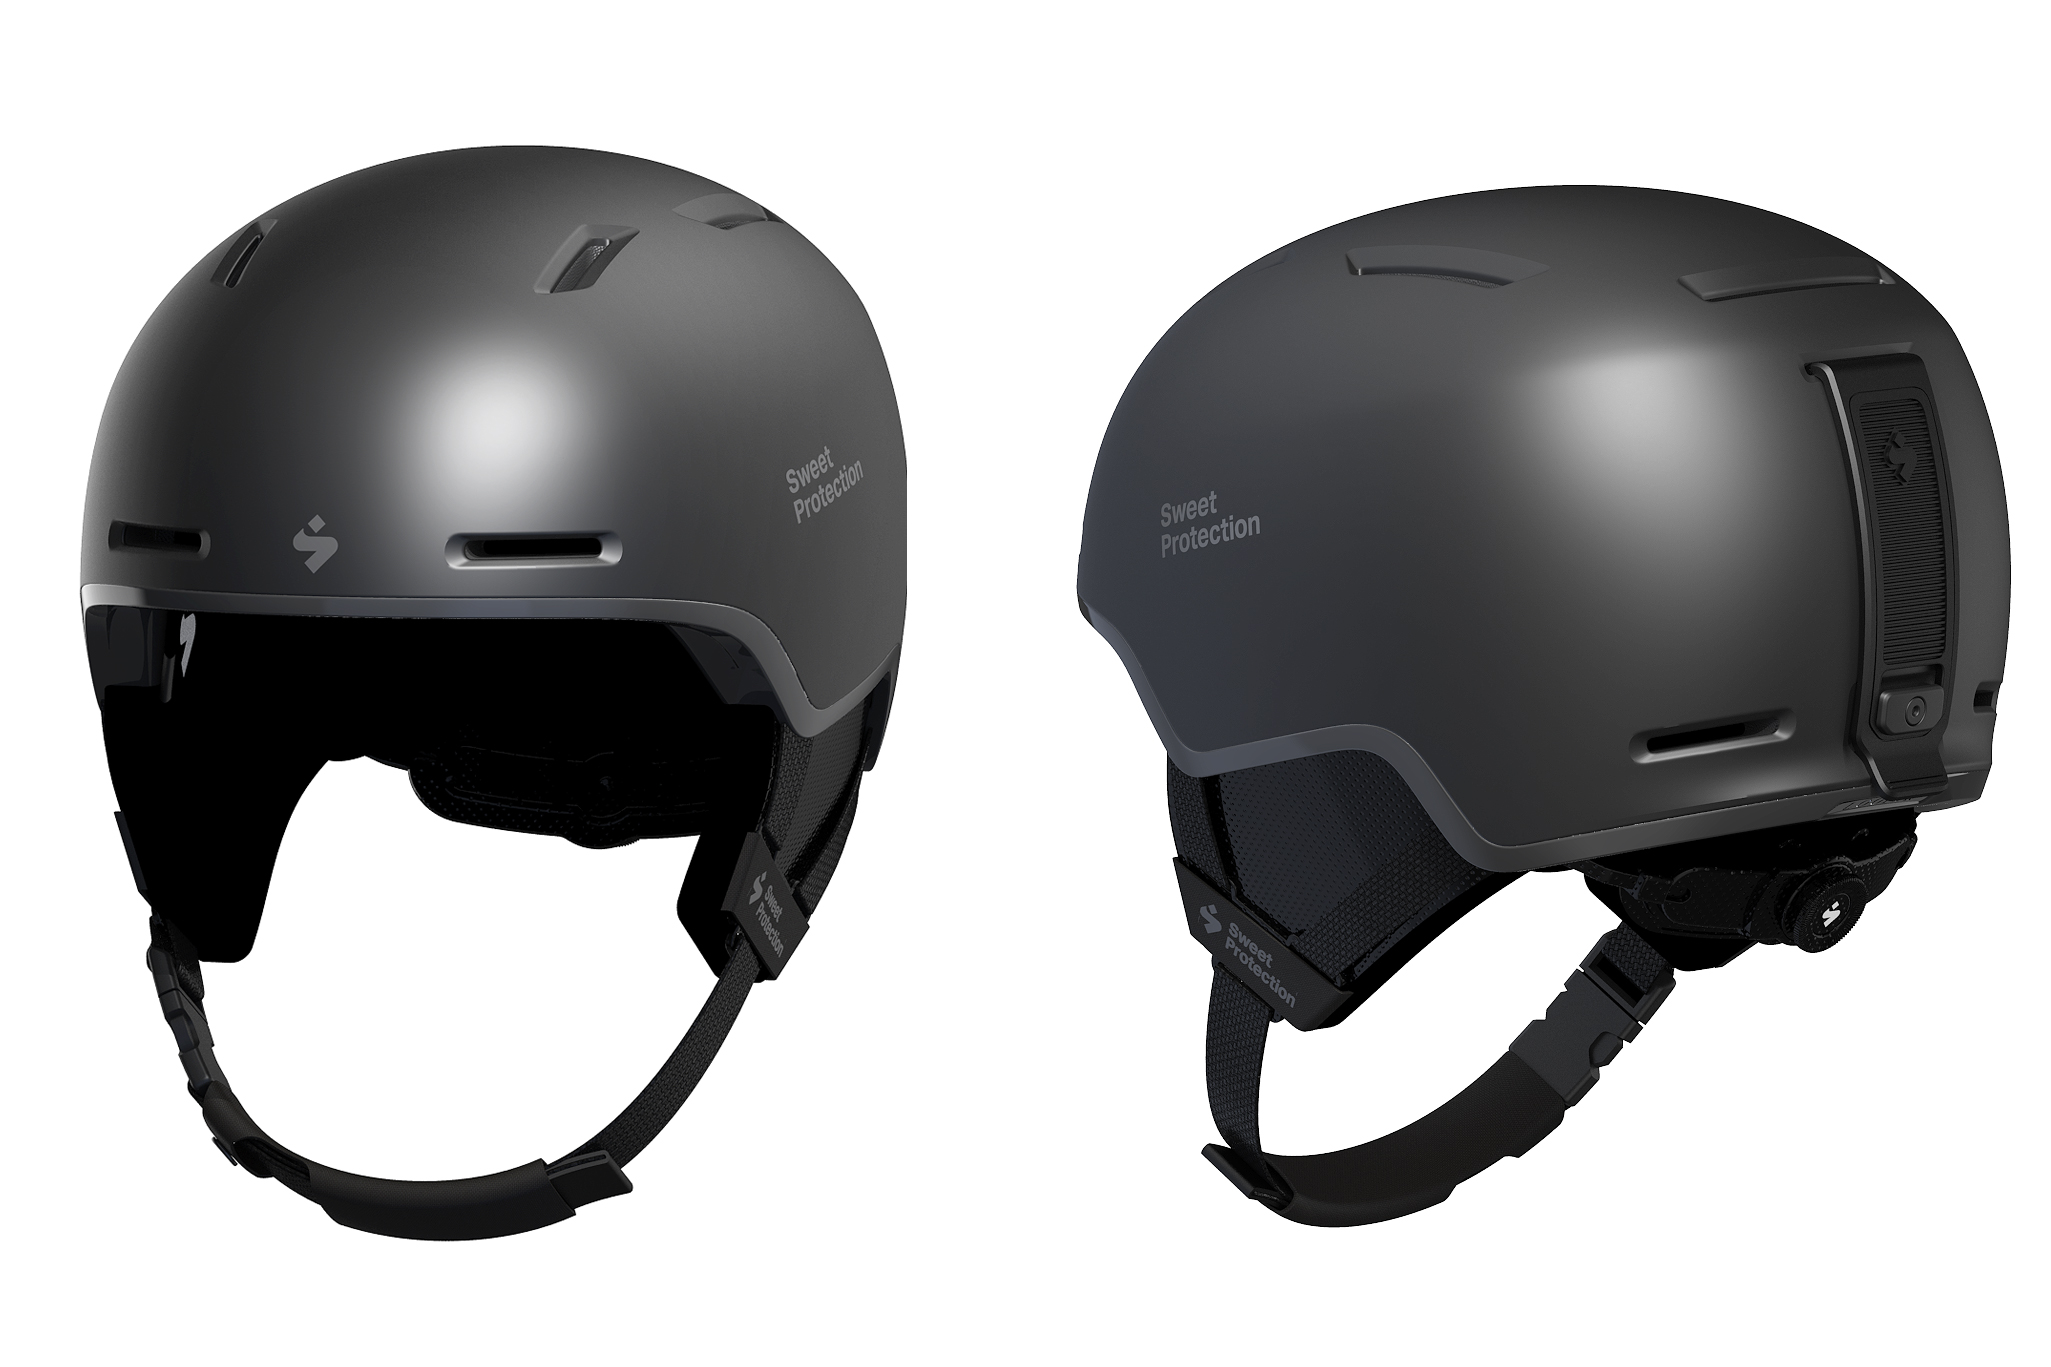 Sweet Protection Looper helmet-front